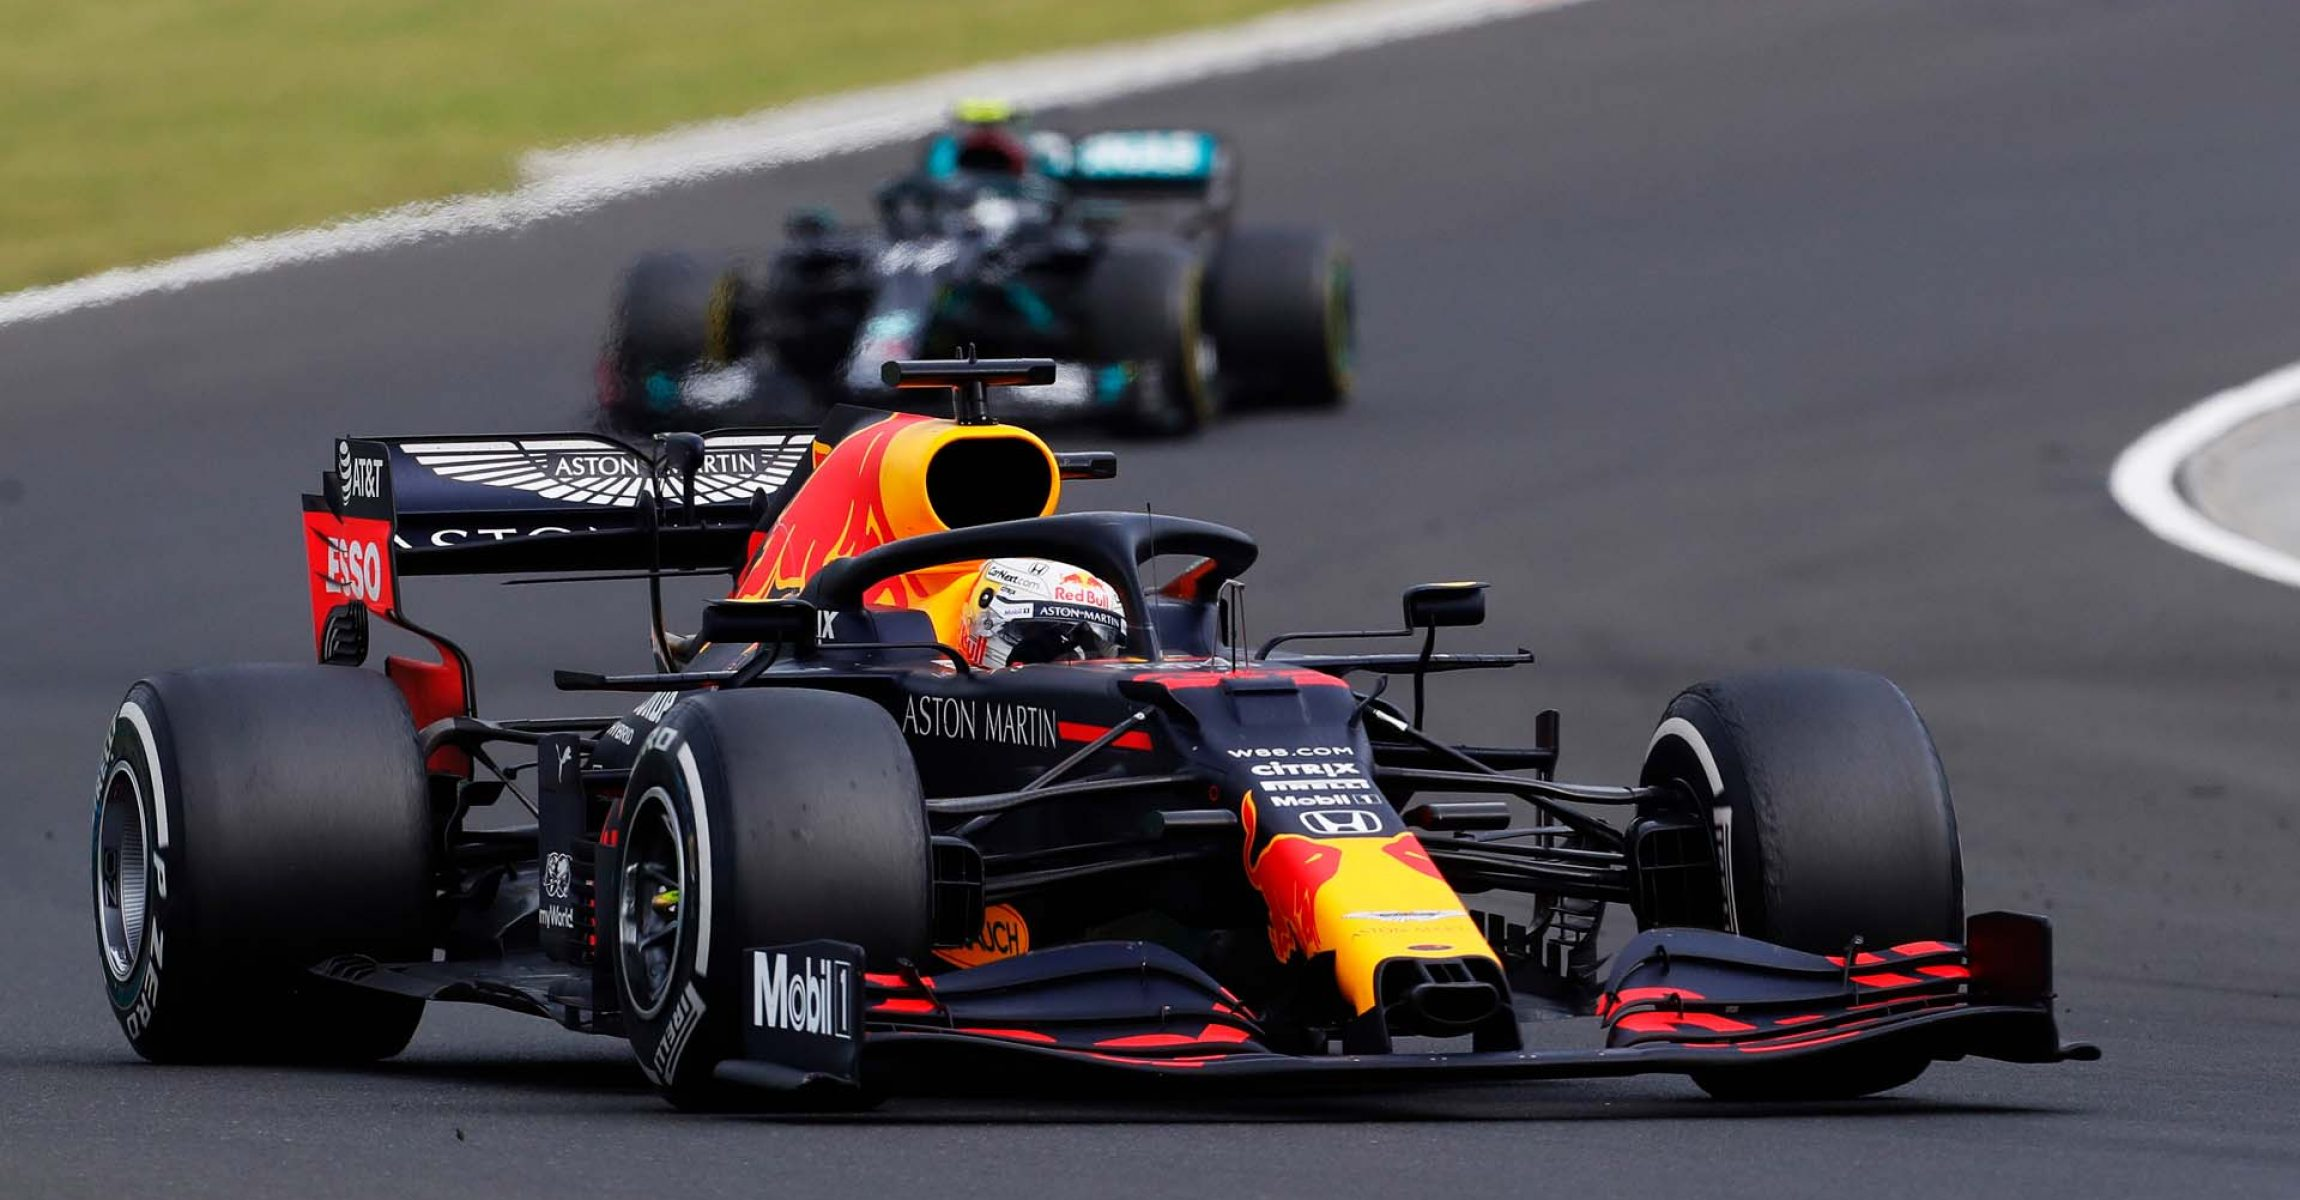 BUDAPEST, HUNGARY - JULY 19: Max Verstappen of the Netherlands driving the (33) Aston Martin Red Bull Racing RB16 leads Valtteri Bottas of Finland driving the (77) Mercedes AMG Petronas F1 Team Mercedes W11 during the Formula One Grand Prix of Hungary at Hungaroring on July 19, 2020 in Budapest, Hungary. (Photo by Darko Bandic/Pool via Getty Images) // Getty Images / Red Bull Content Pool  // AP-24P72V1212111 // Usage for editorial use only //